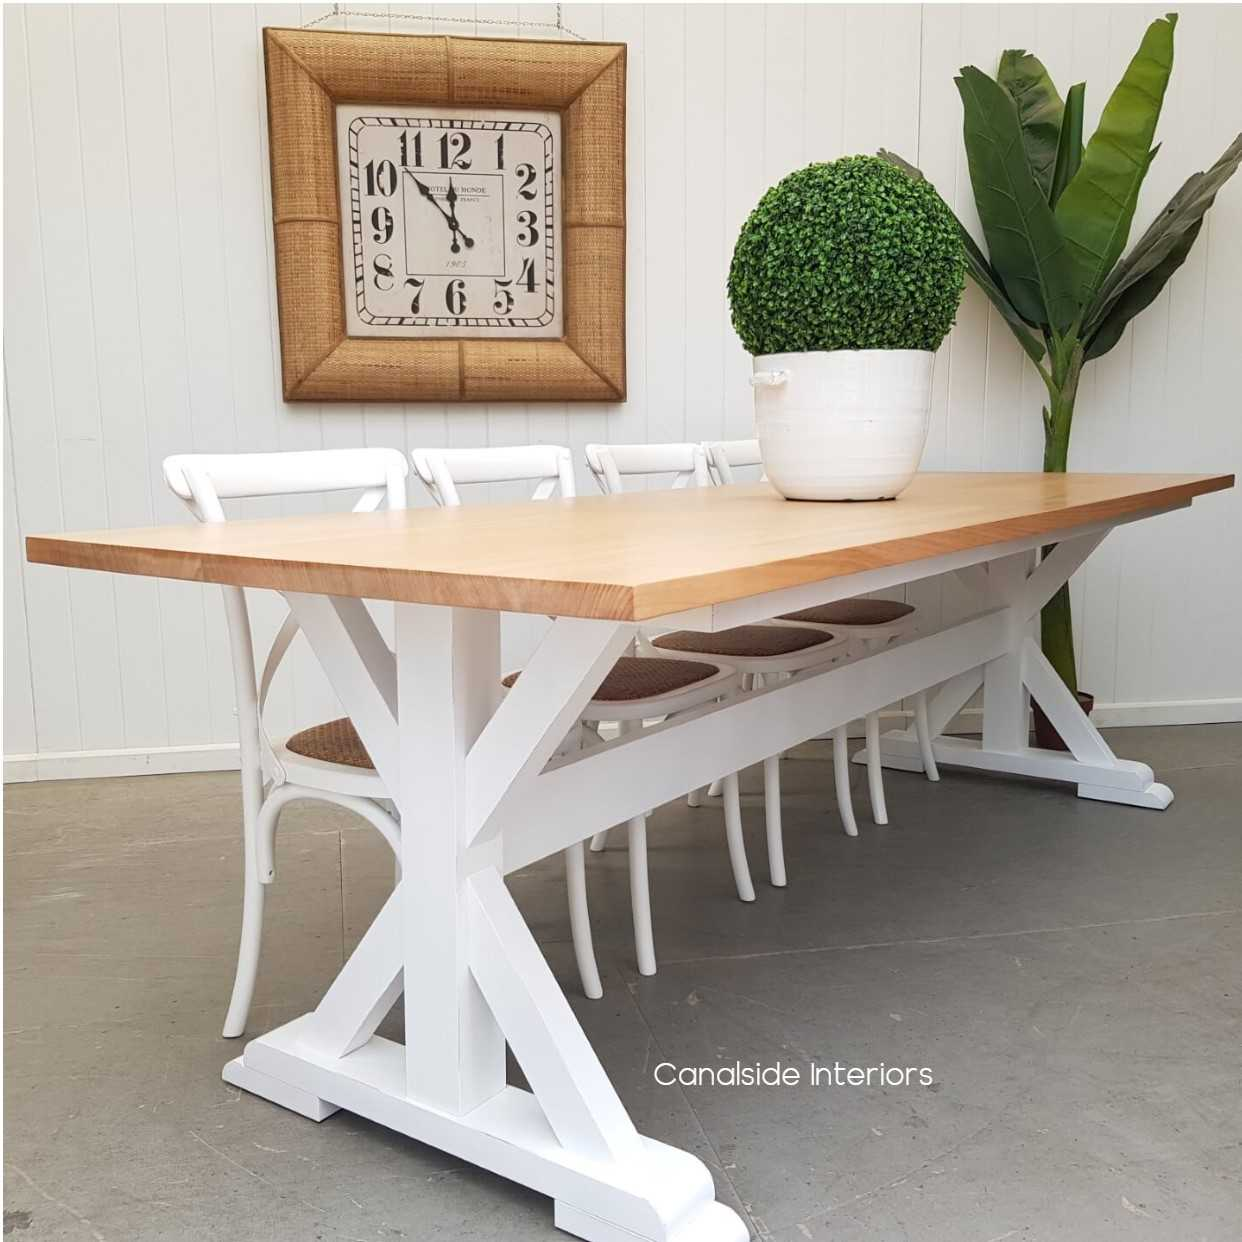 Custom Made Lyon Dining Table MADE TO YOUR SIZE TABLES, HAMPTONS Style, PLANTATION Style, TABLES Dining Tables